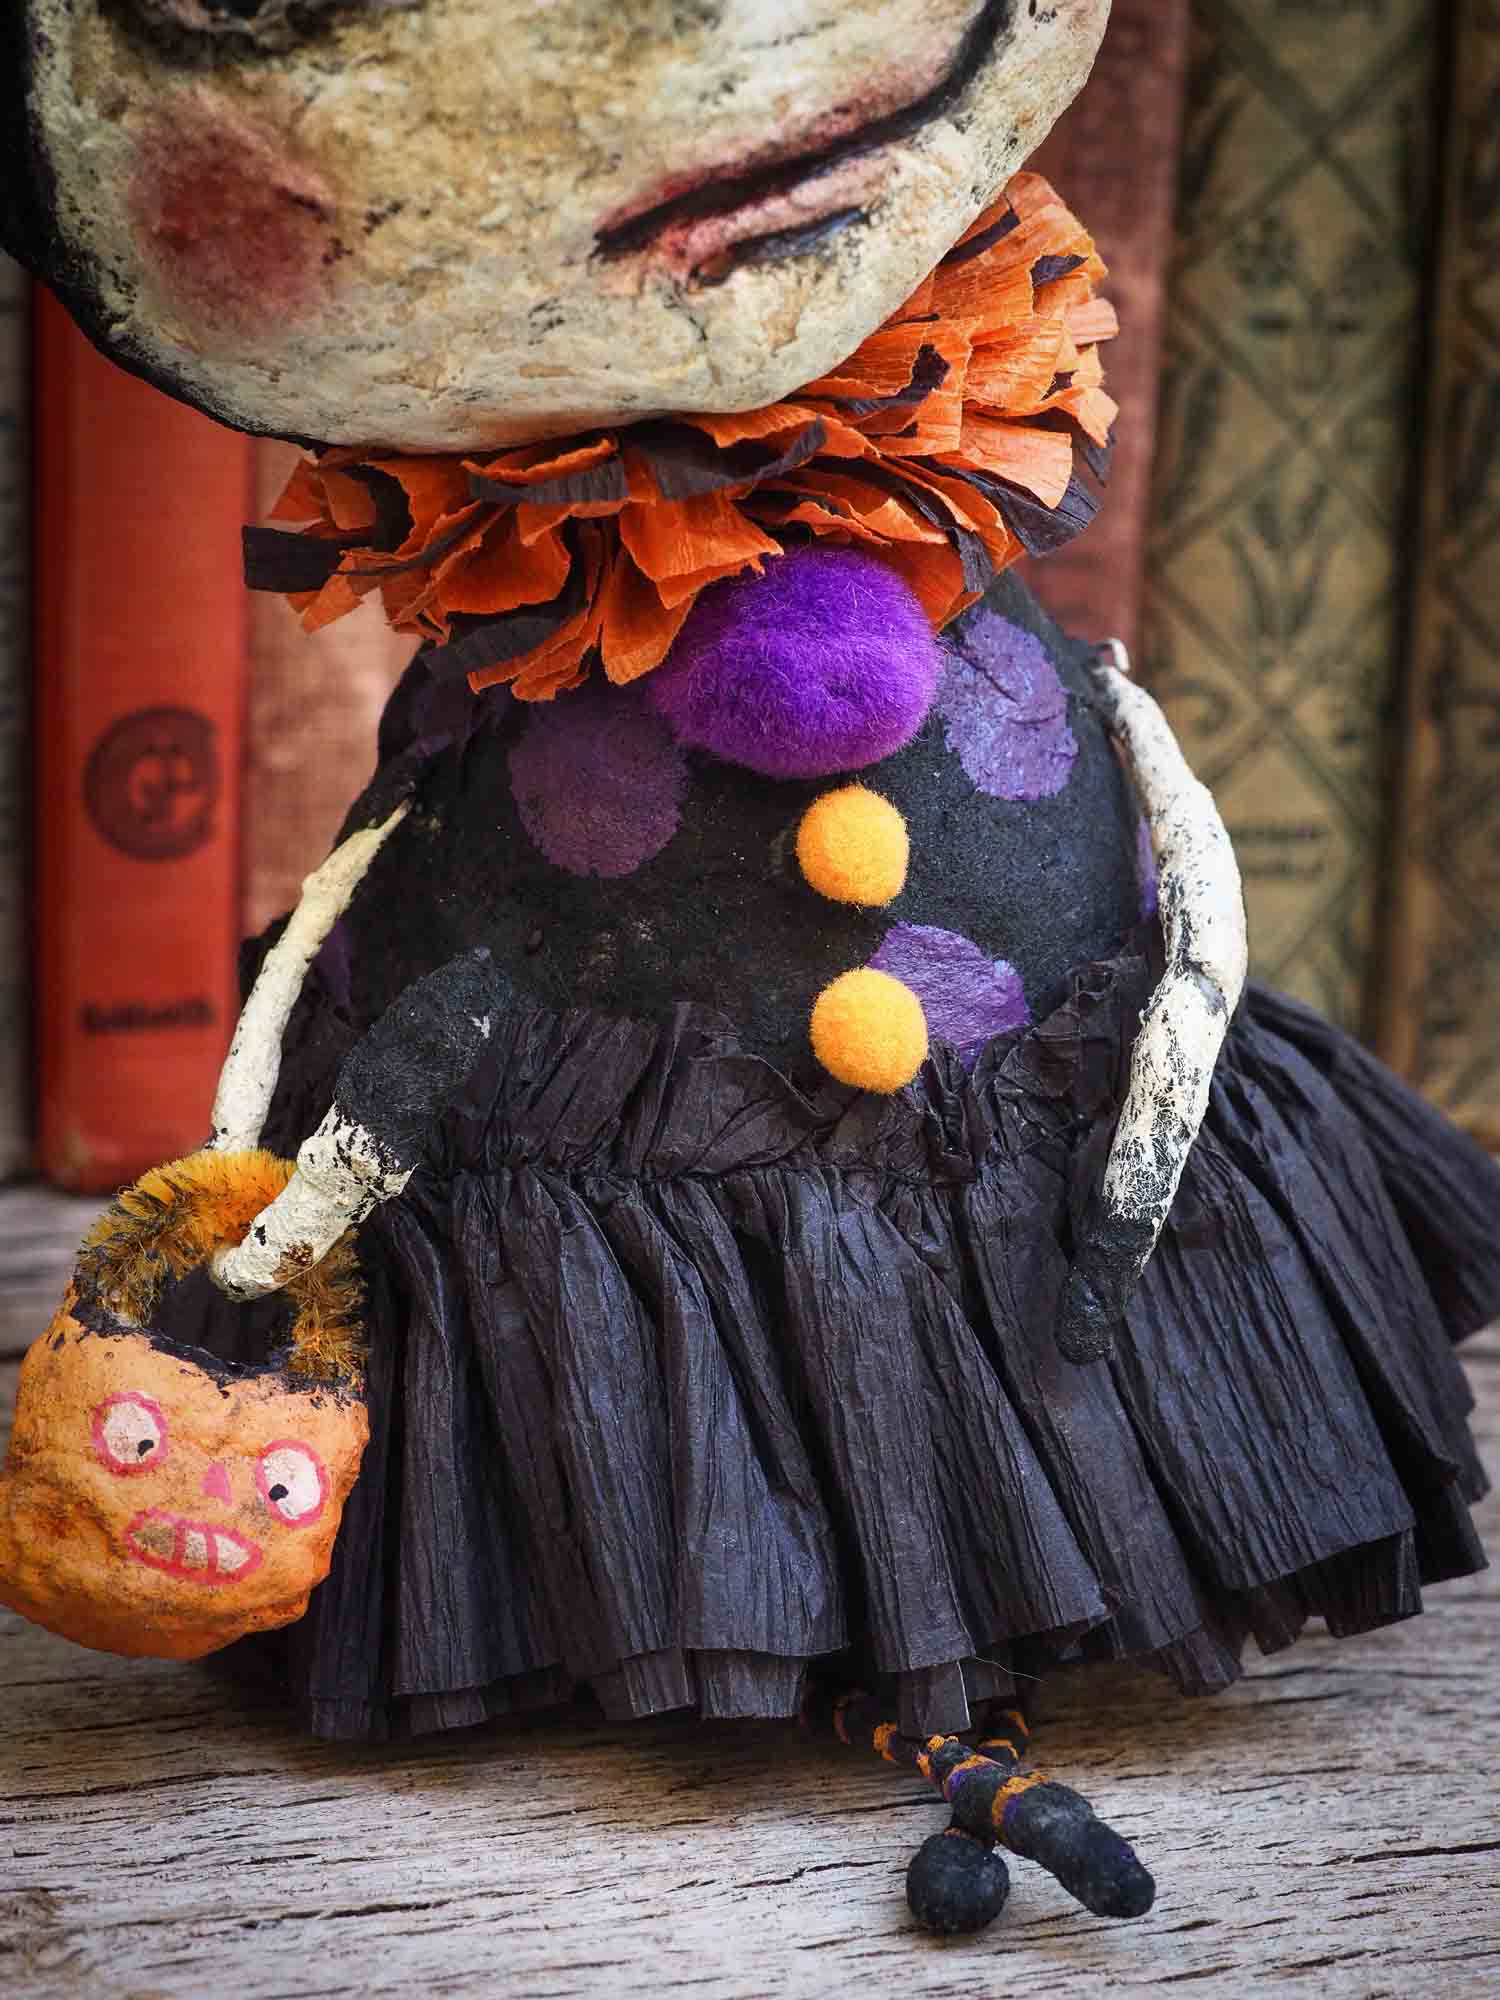 Danita original handmade Halloween art. Hand Made ornament for Halloween it is a witch cauldron made of paper clay and spun cotton to hang as as home decor decoration for a Halloween or Christmas tree.